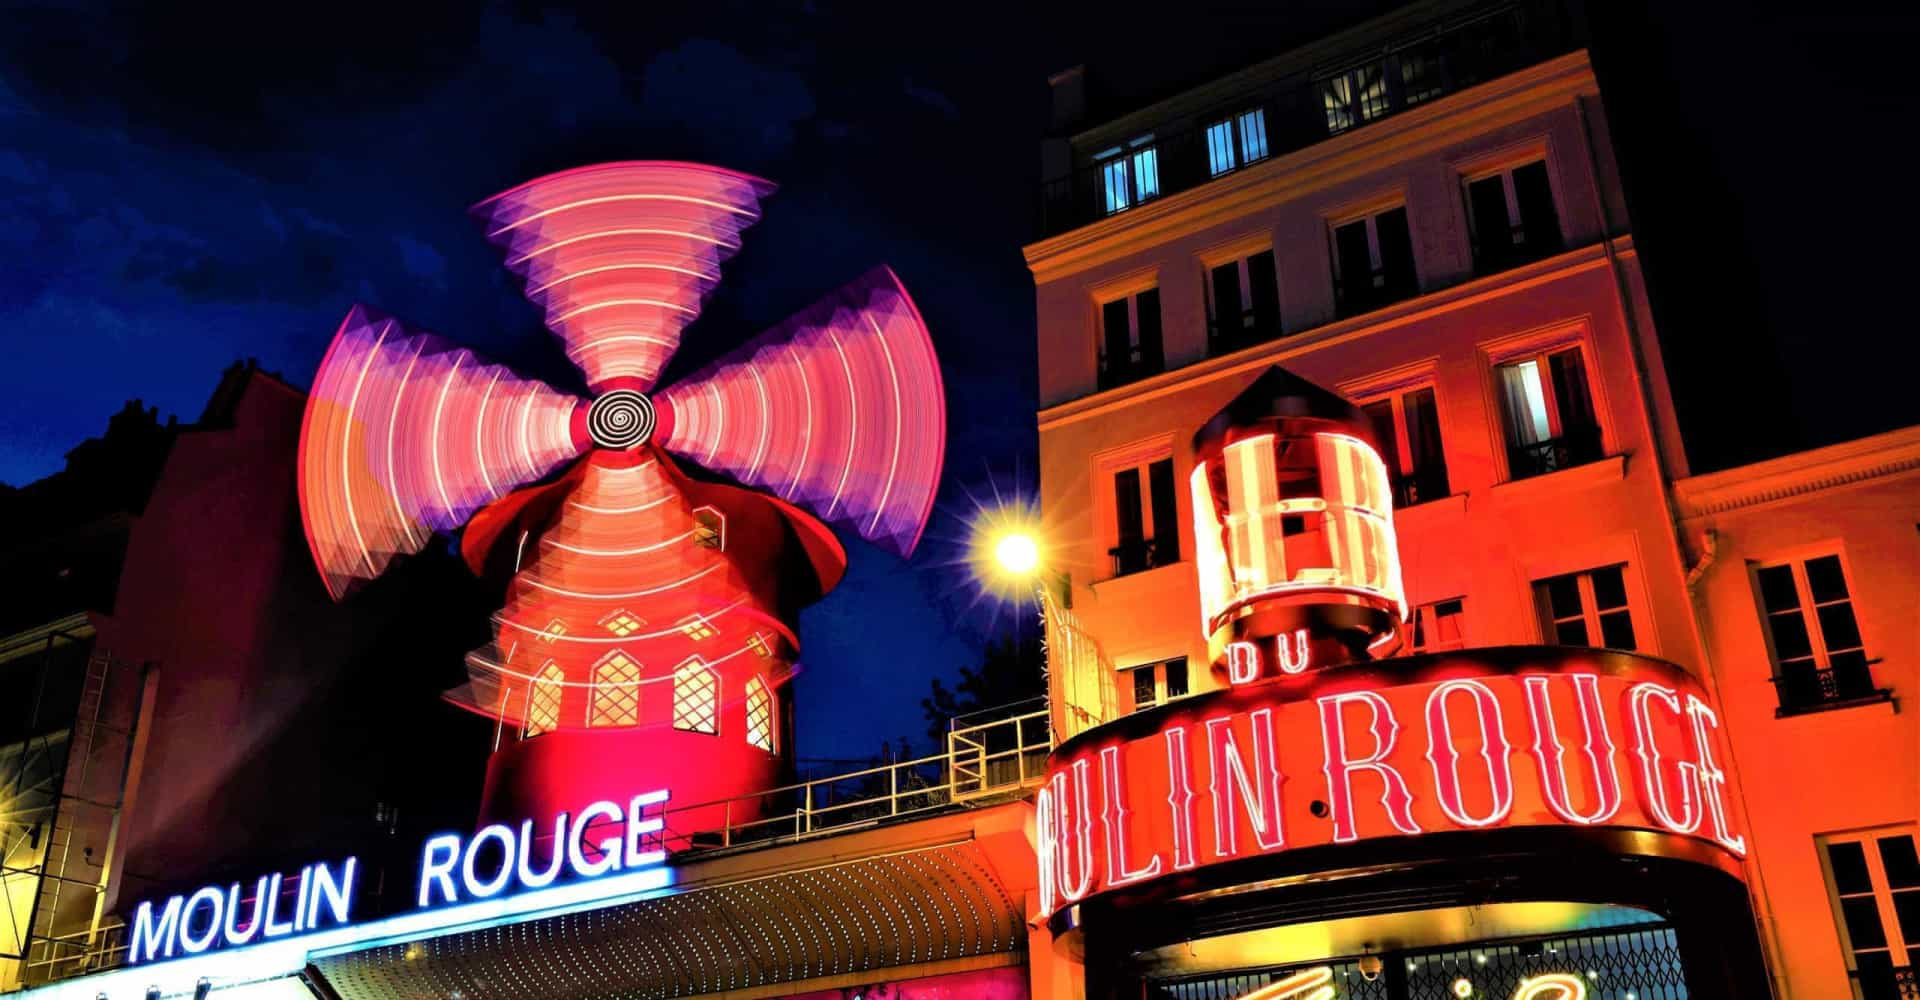 'Moulin Rouge!' and other musicals based on movies